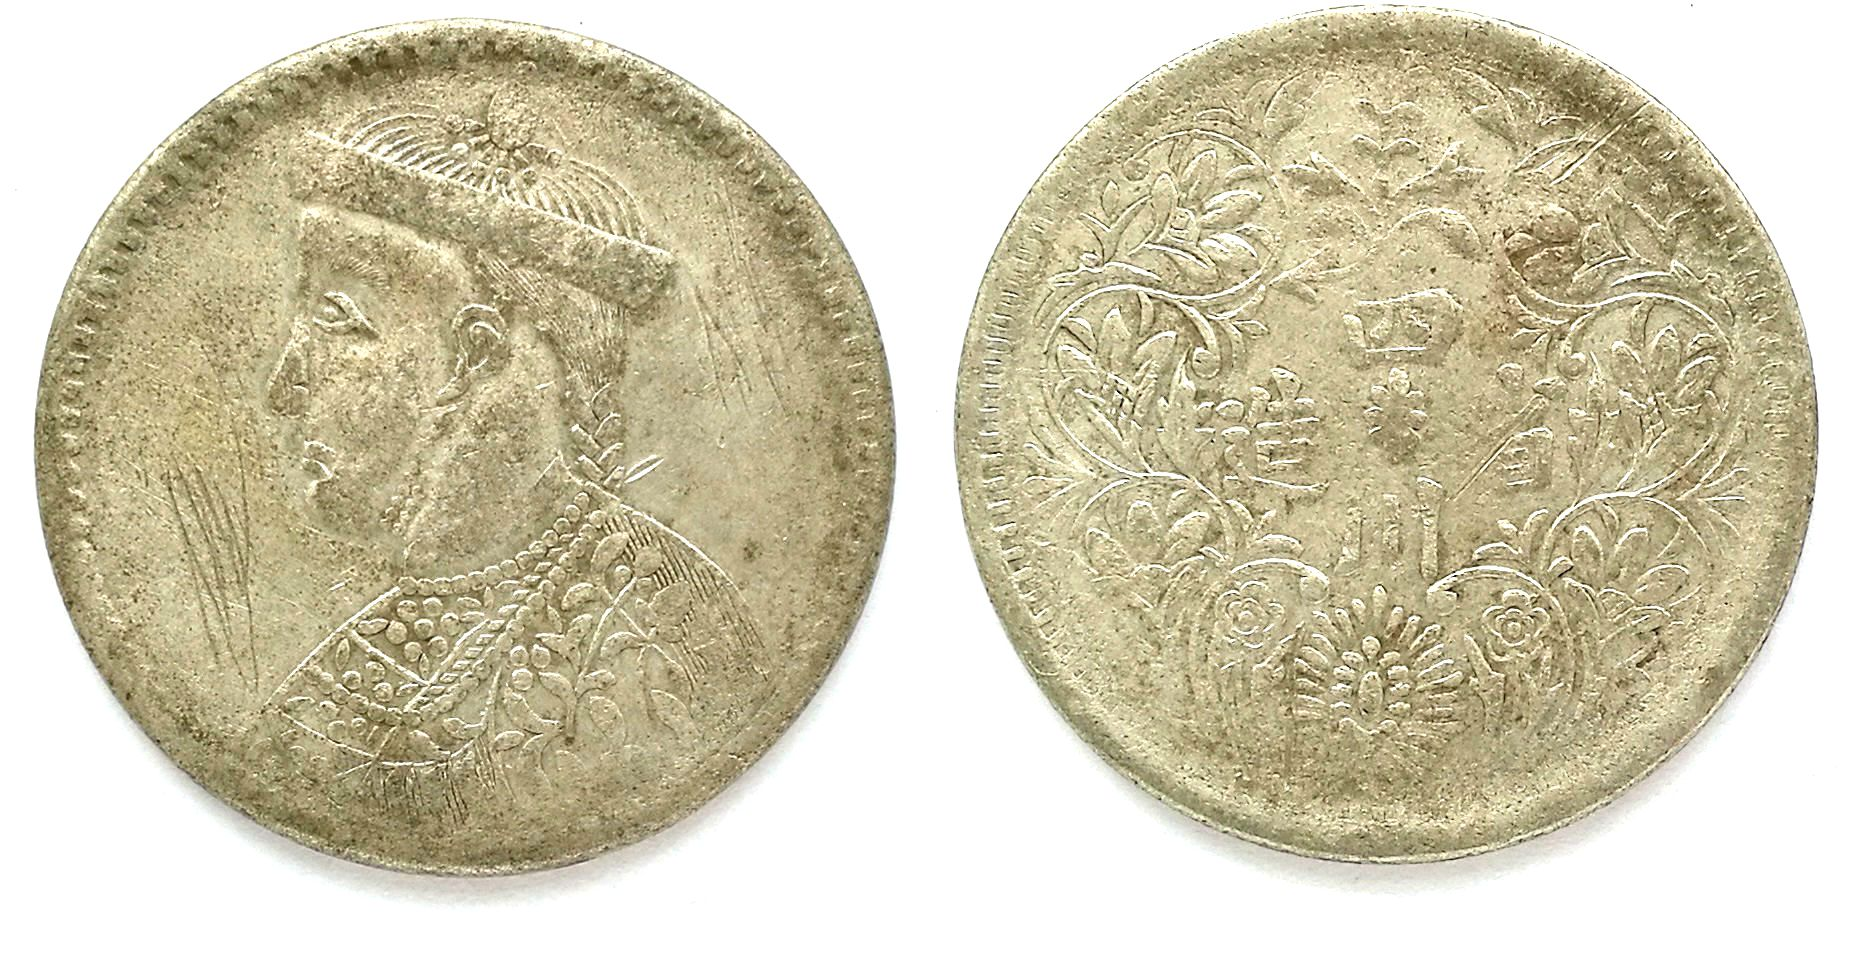 XZ098, Tibet Trade Silver Coin, One Rupee (Third Period), 1930's, 11.5 grams